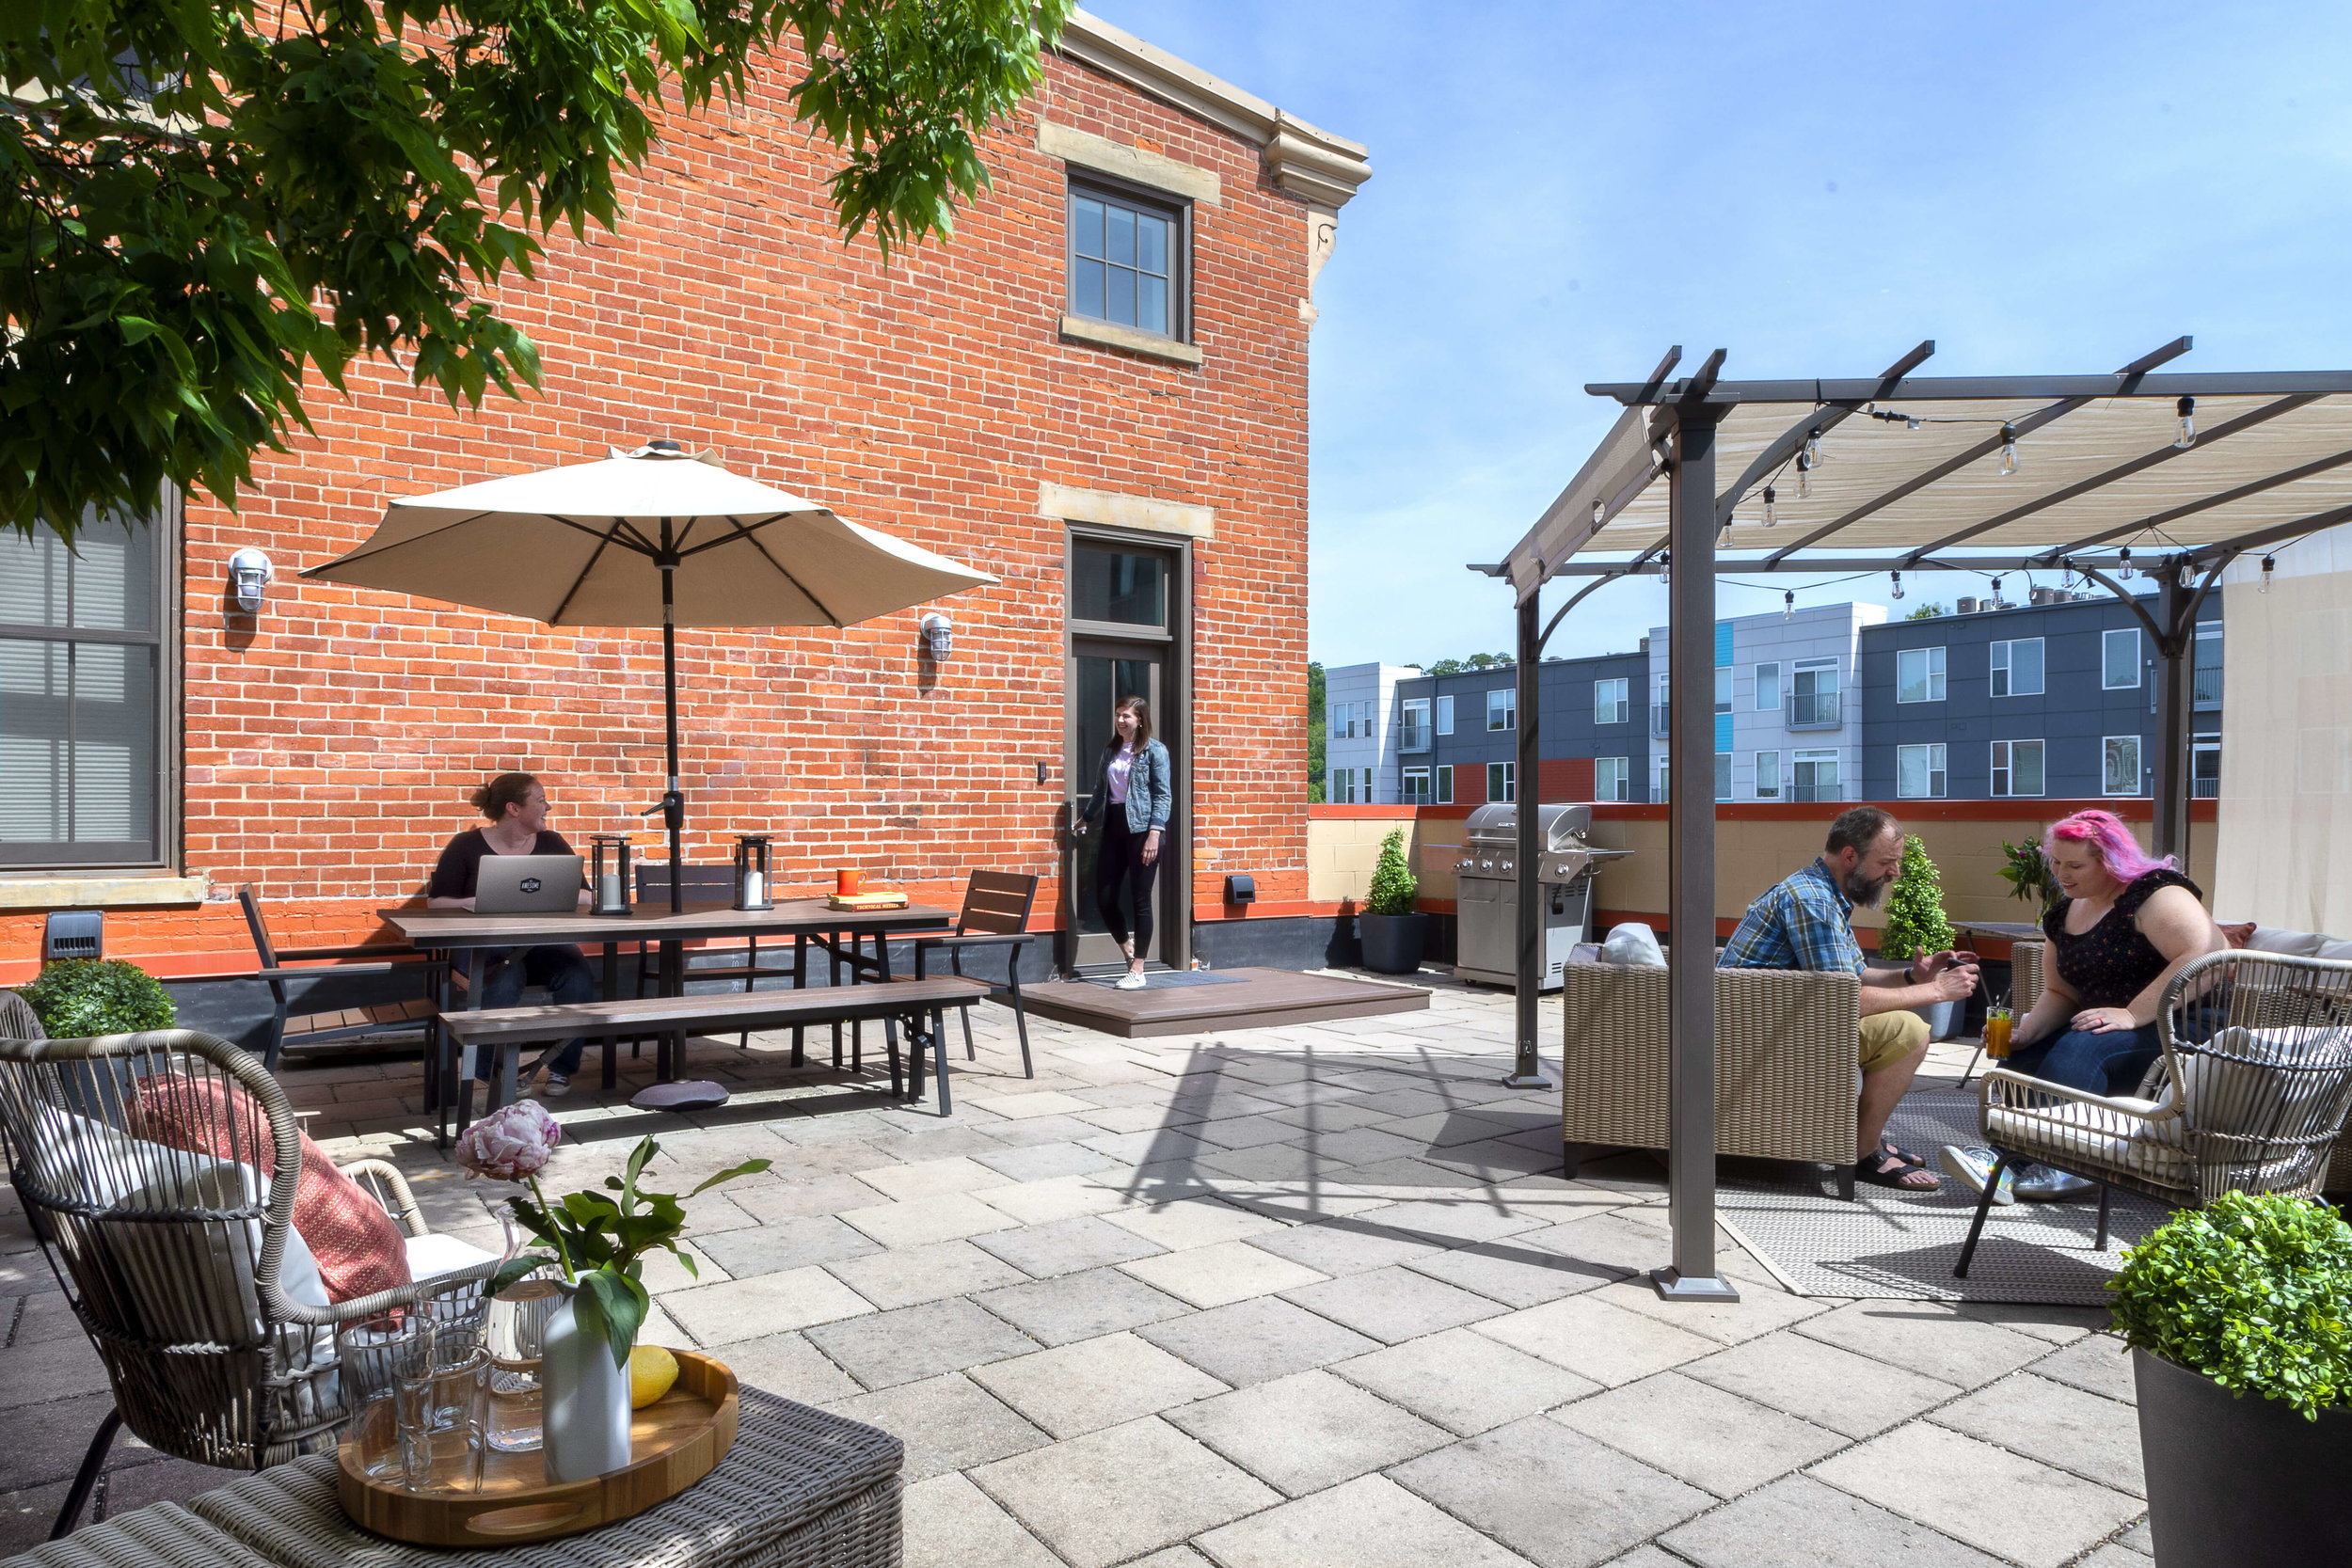 northside-depot-co-working-patio.jpg